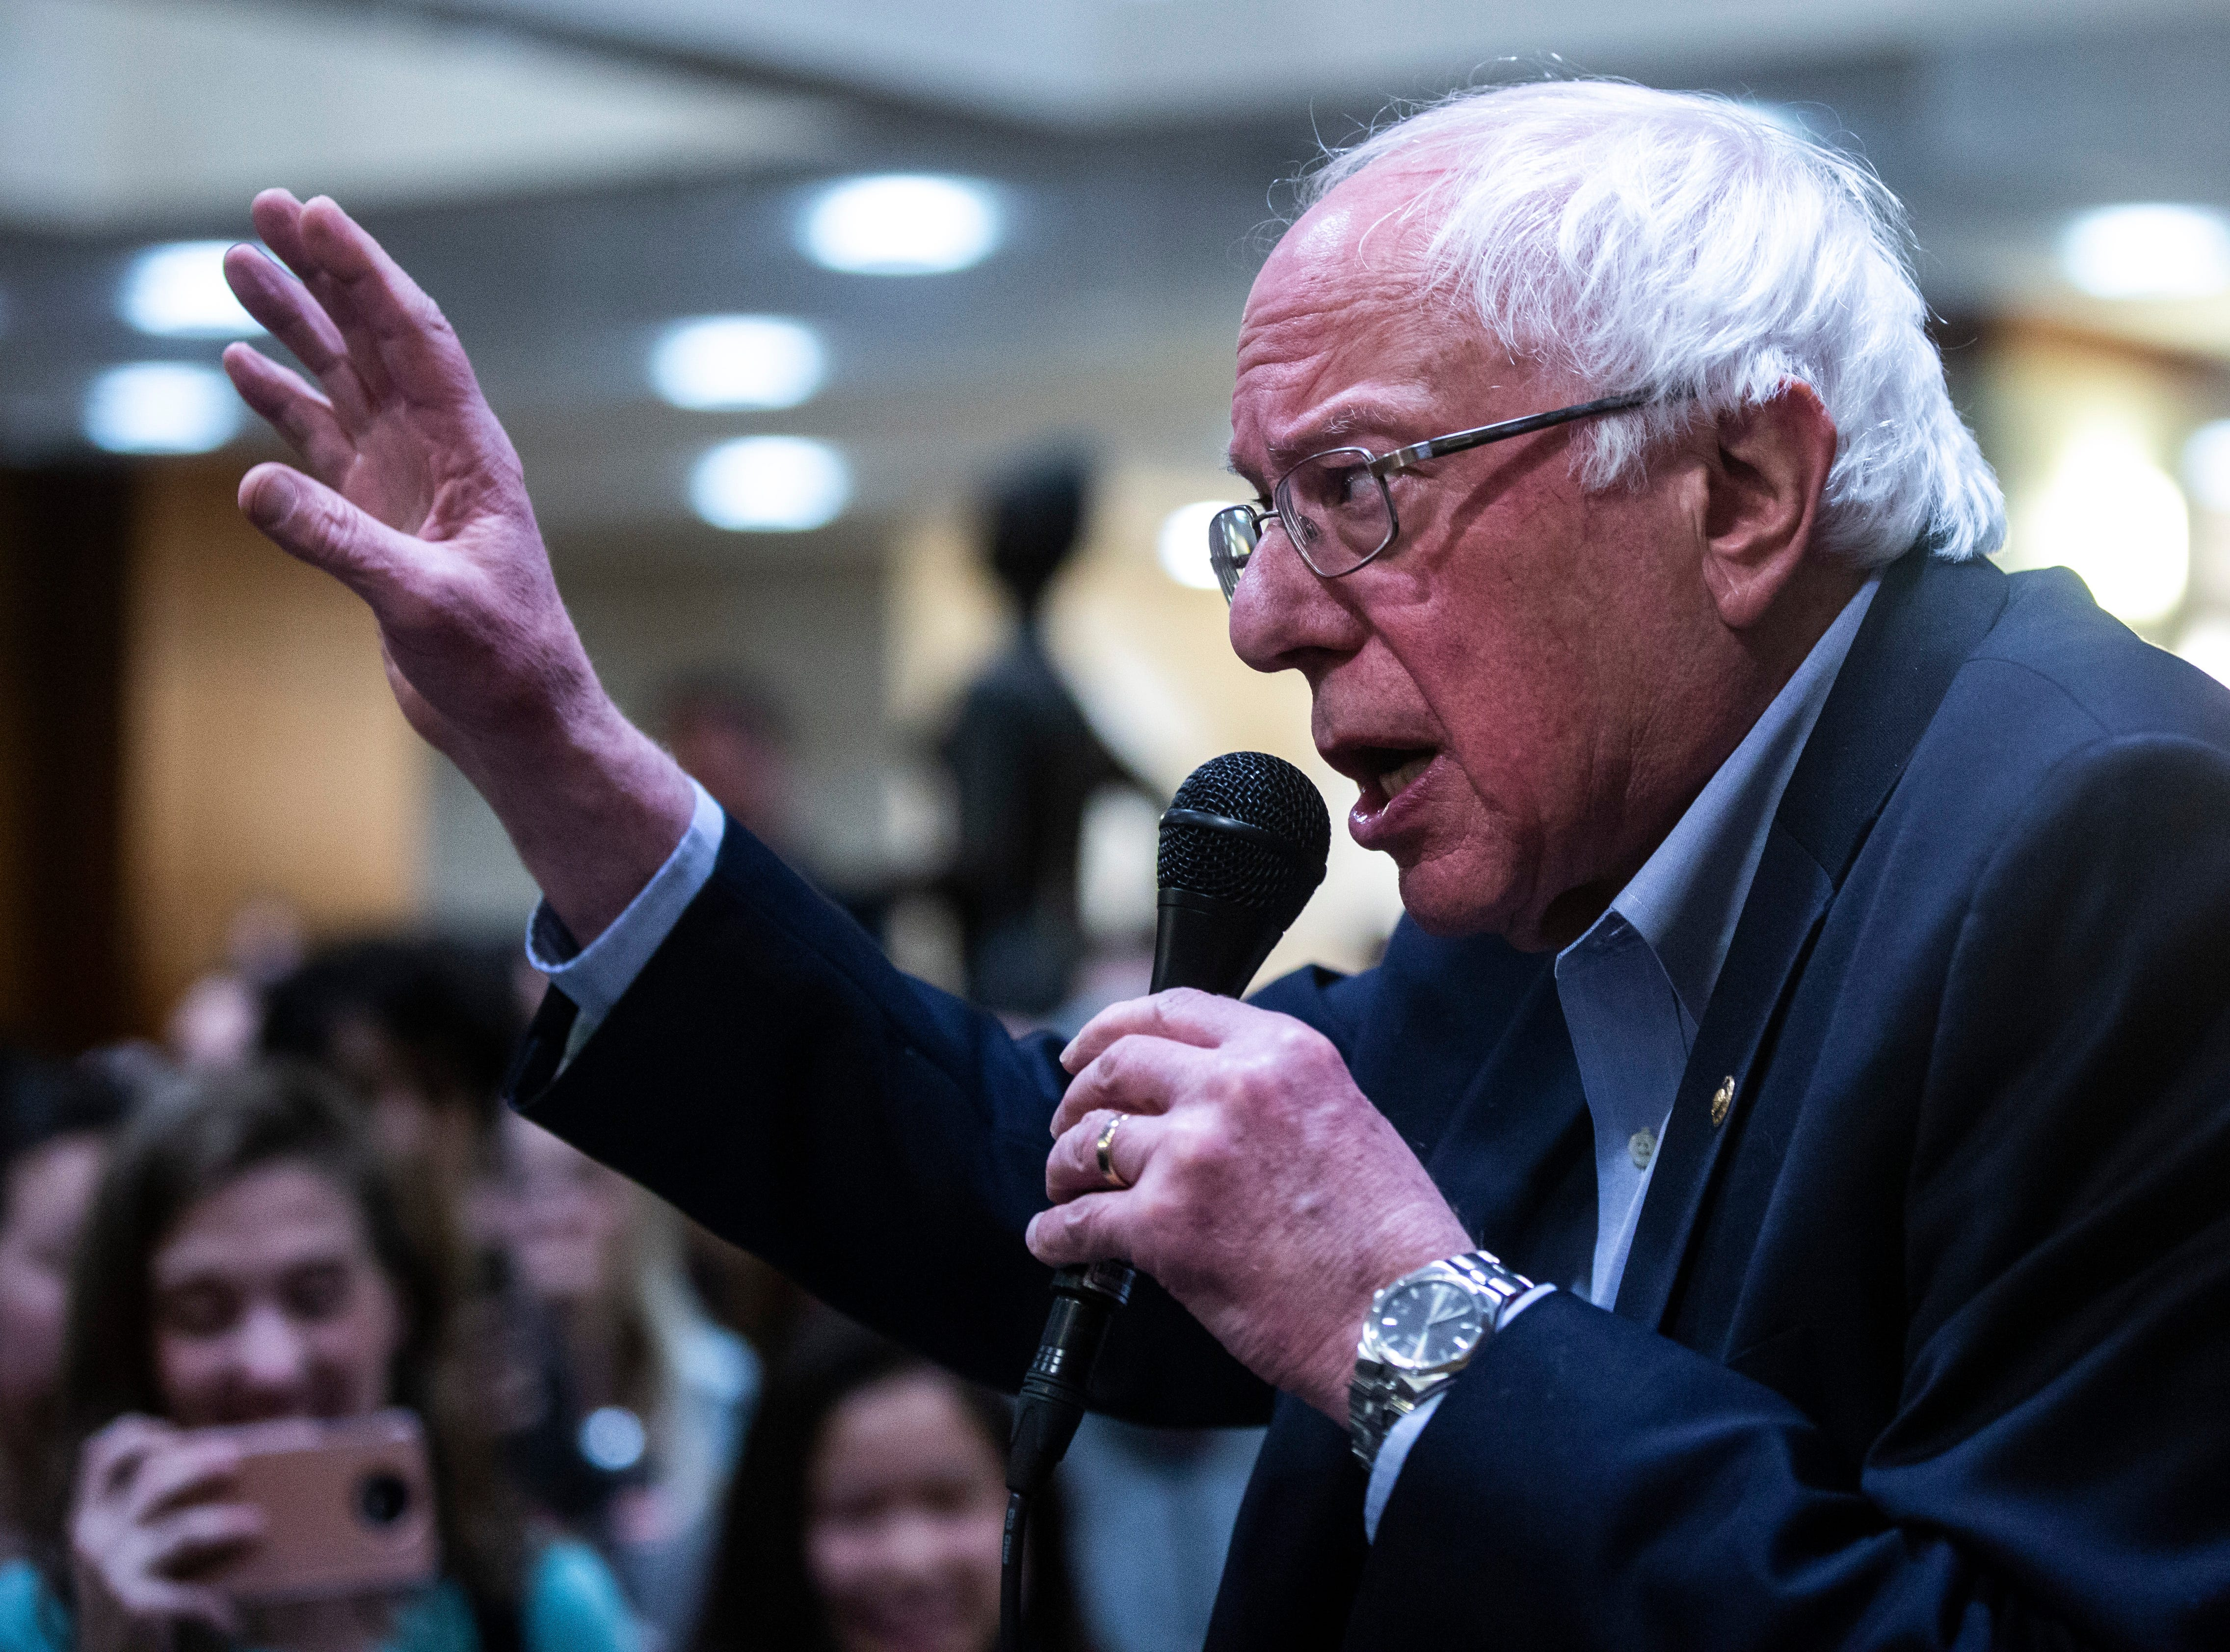 U.S. Sen. Bernie Sanders, I-VT, speaks to more than 400 members of the overflow crowd at an event during his first trip to the state ahead of the caucus, Friday, March 8, 2019, at the Iowa Memorial Union on the University of Iowa campus in Iowa City, Iowa.